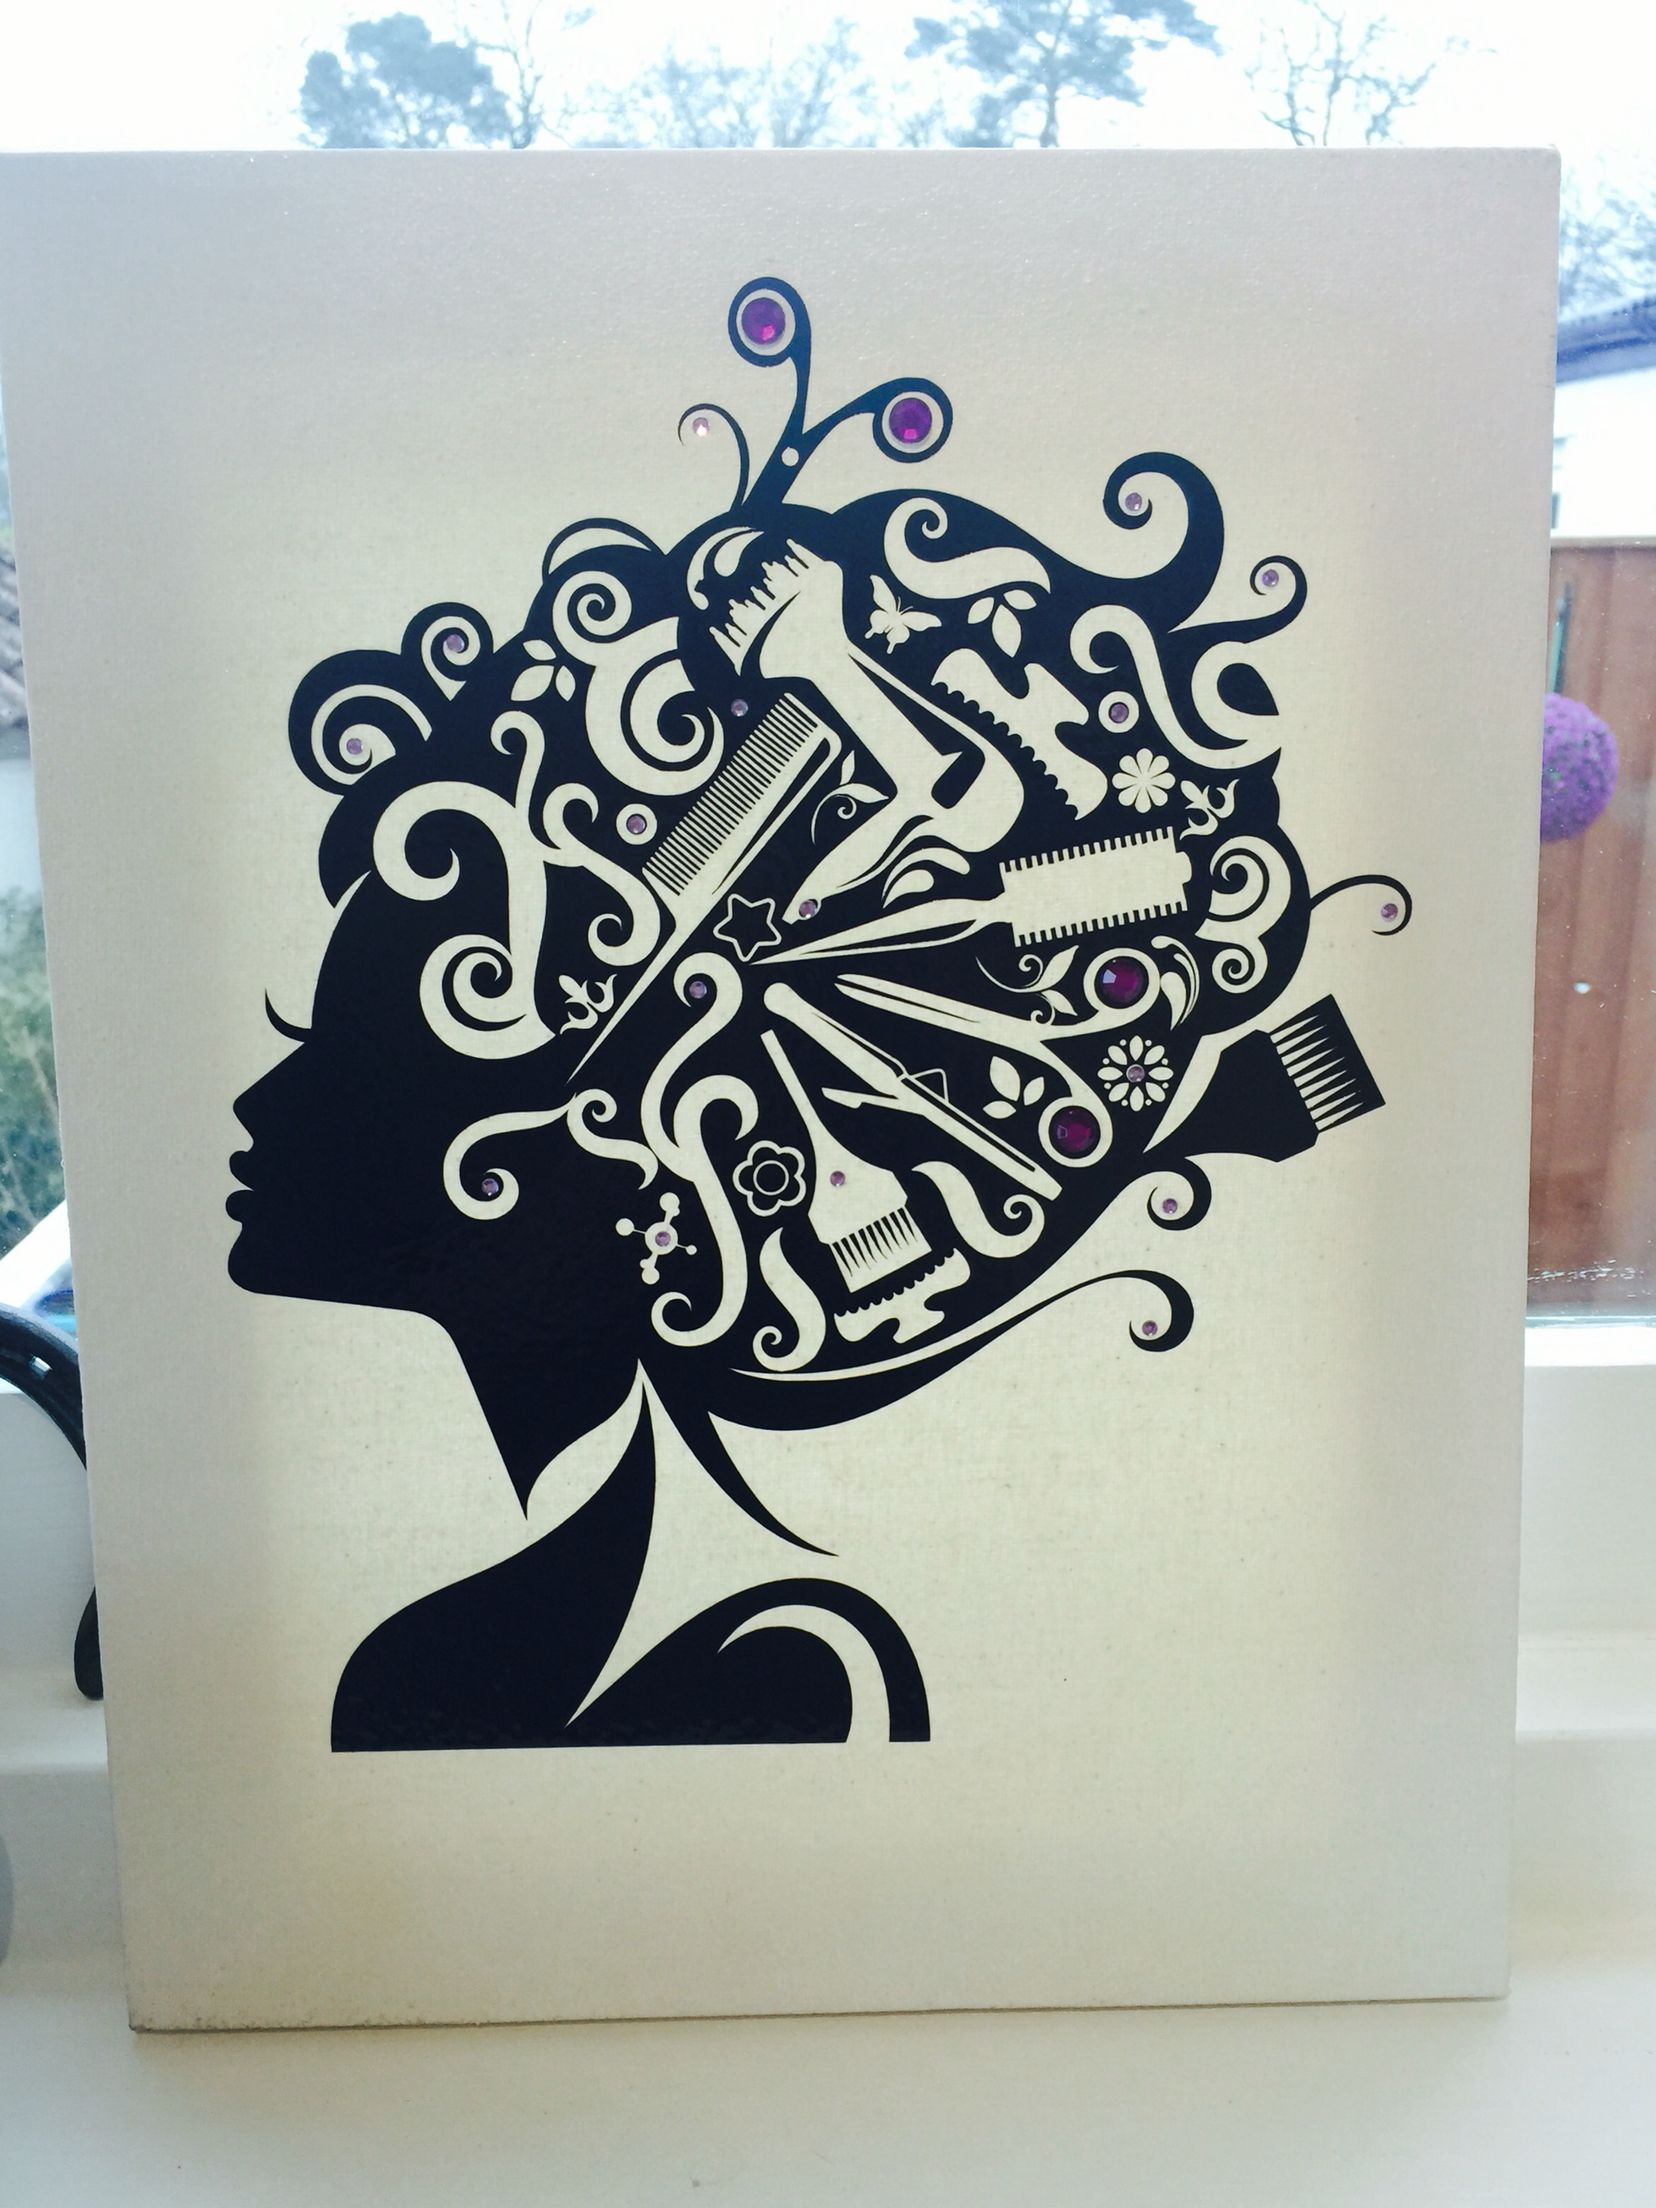 Vinyl on a canvas perfect gift for a hairdresser x Salon